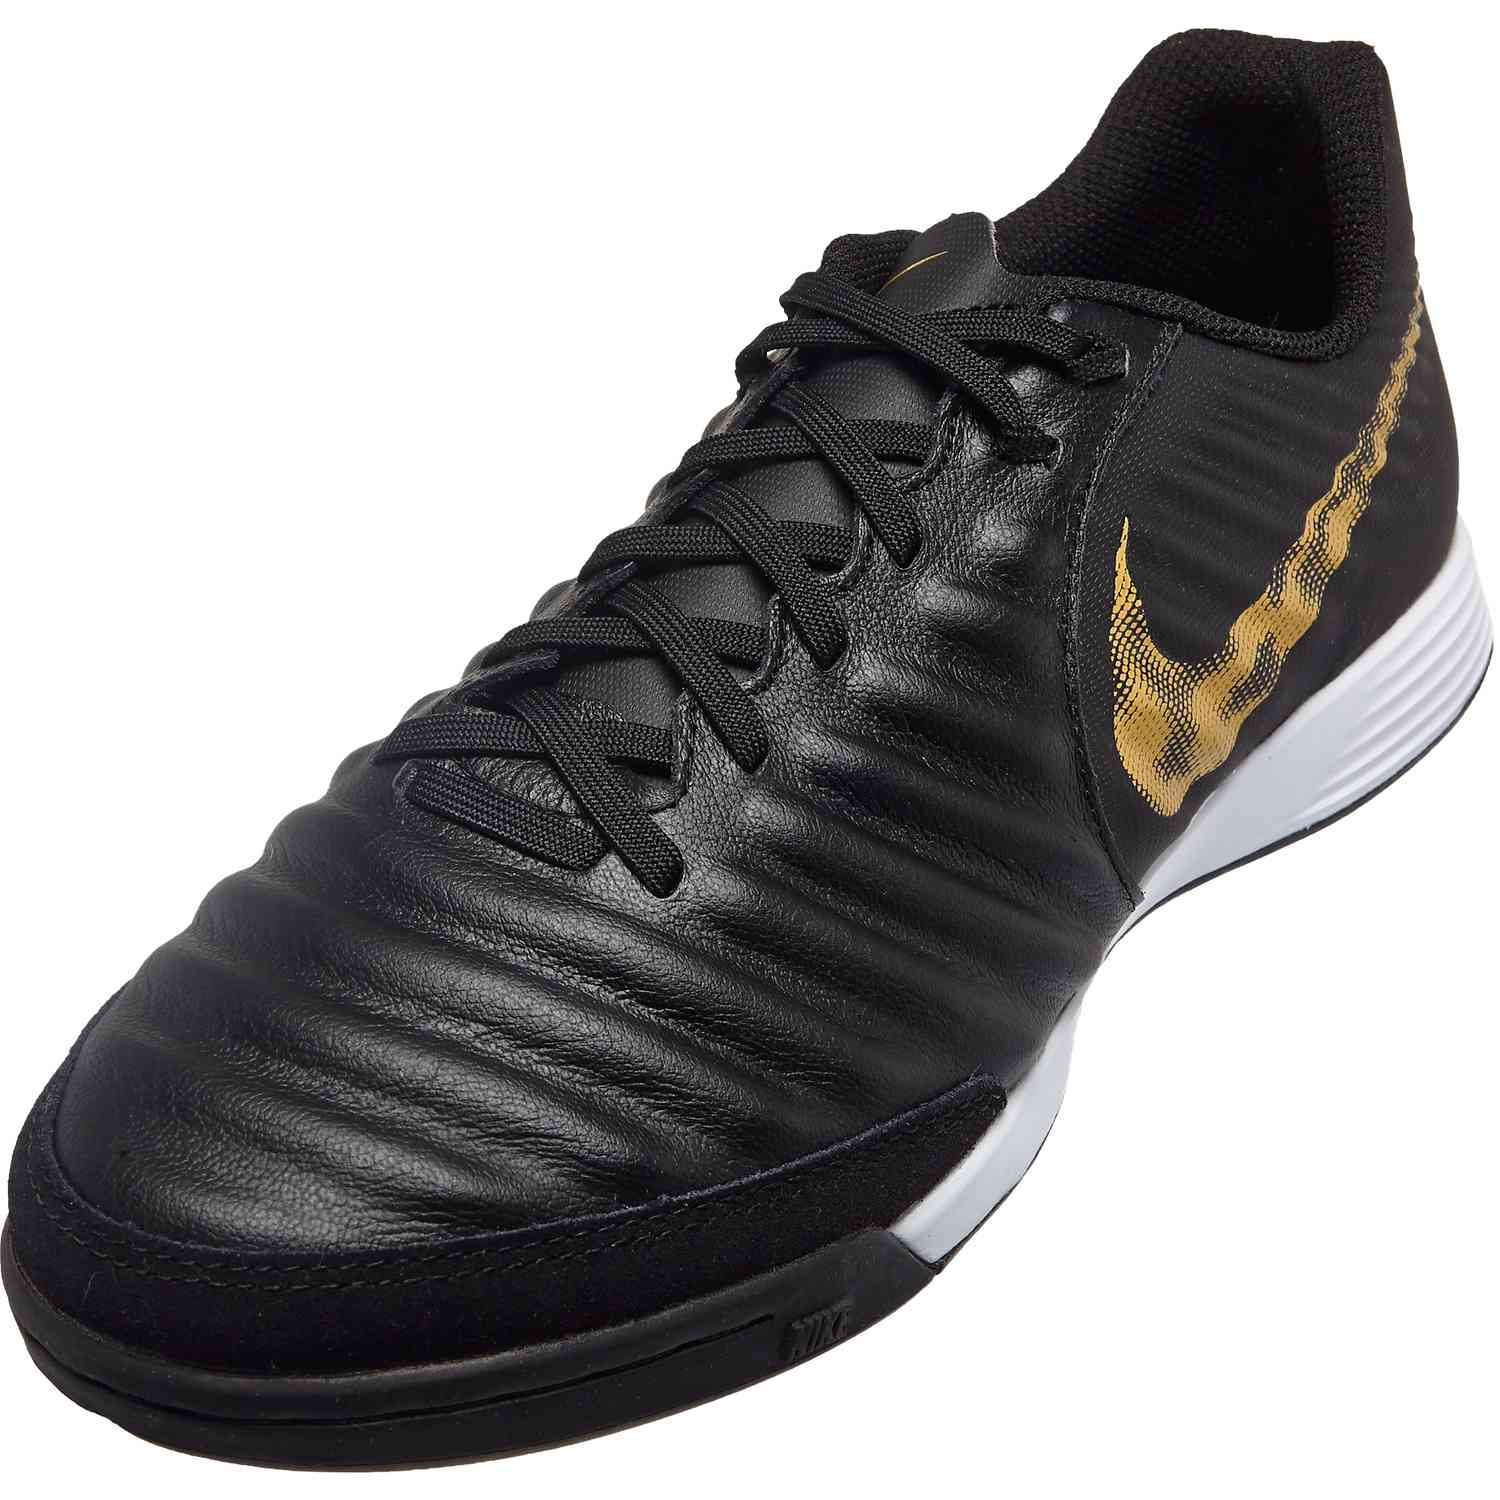 0271dfb174a Nike Tiempo Legend 7 Academy IC - Black Lux - Soccer Master